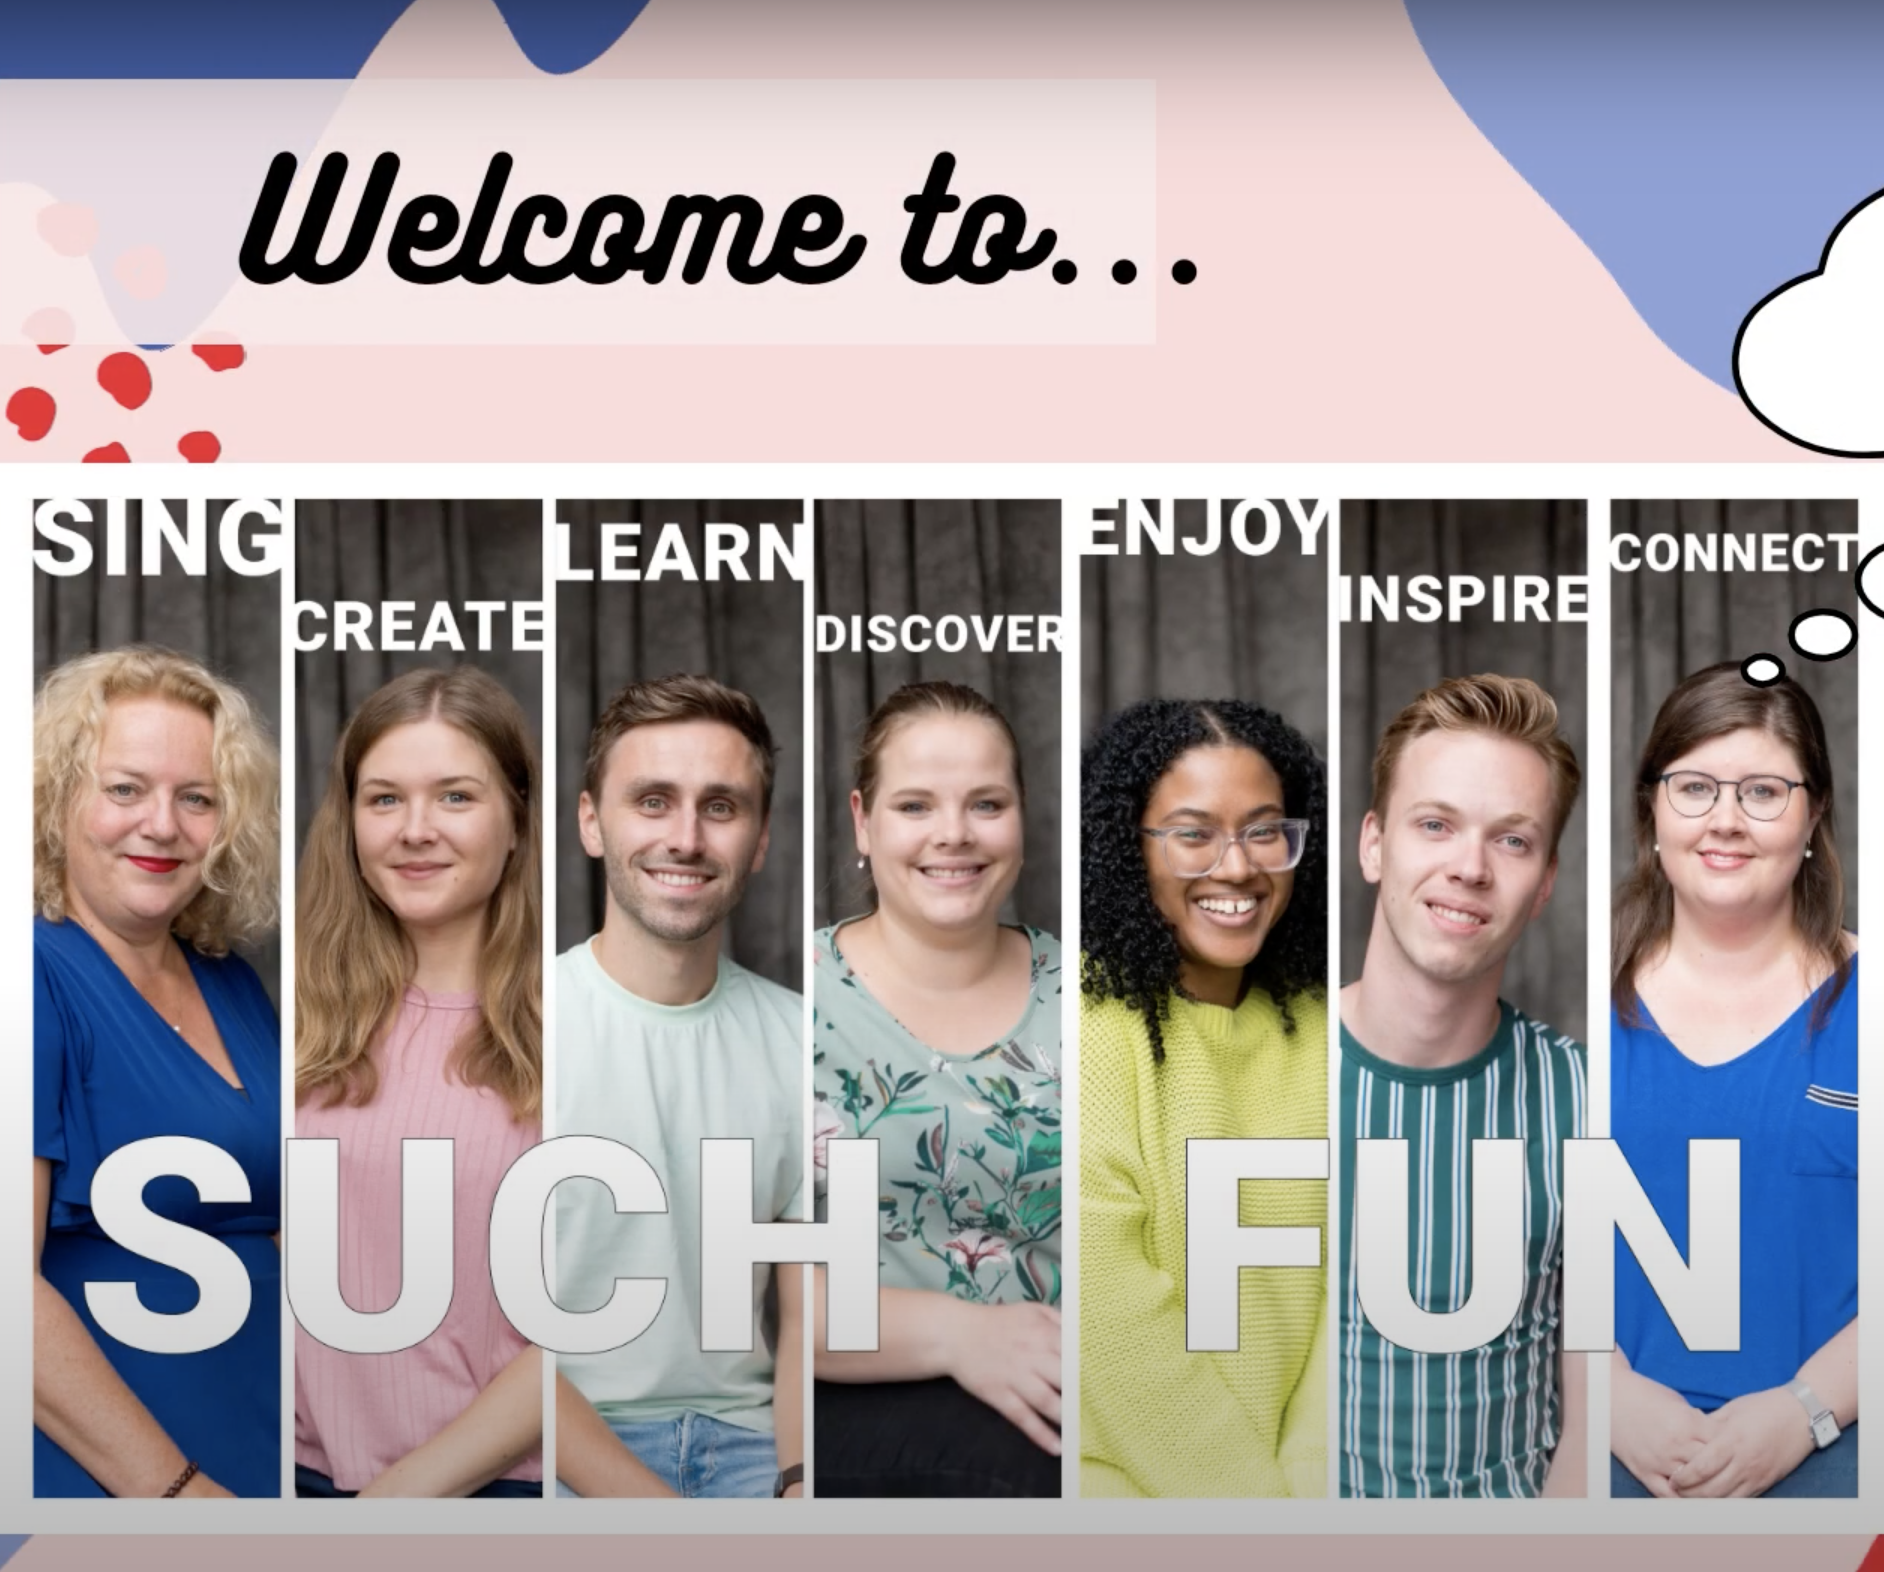 Welcome to Such Fun!